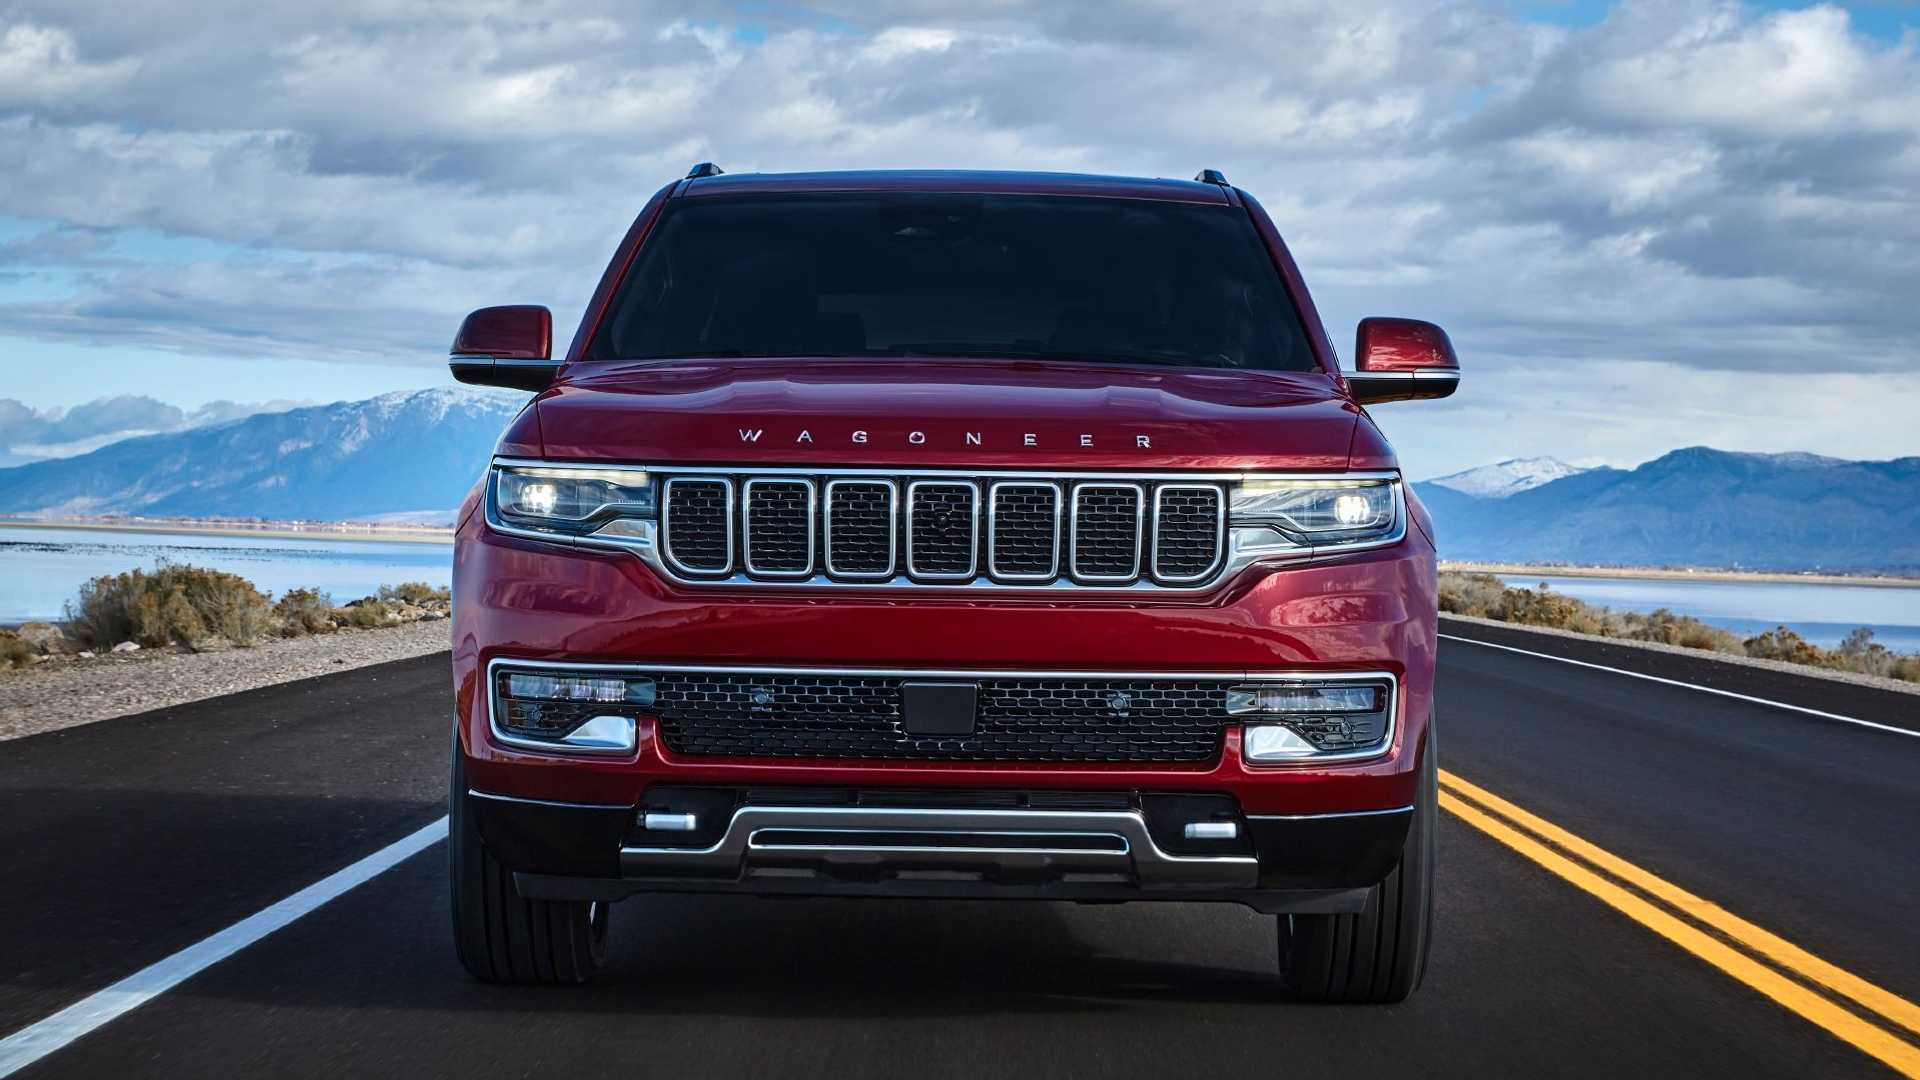 2022-jeep-wagoneer-exterior-front-view-1